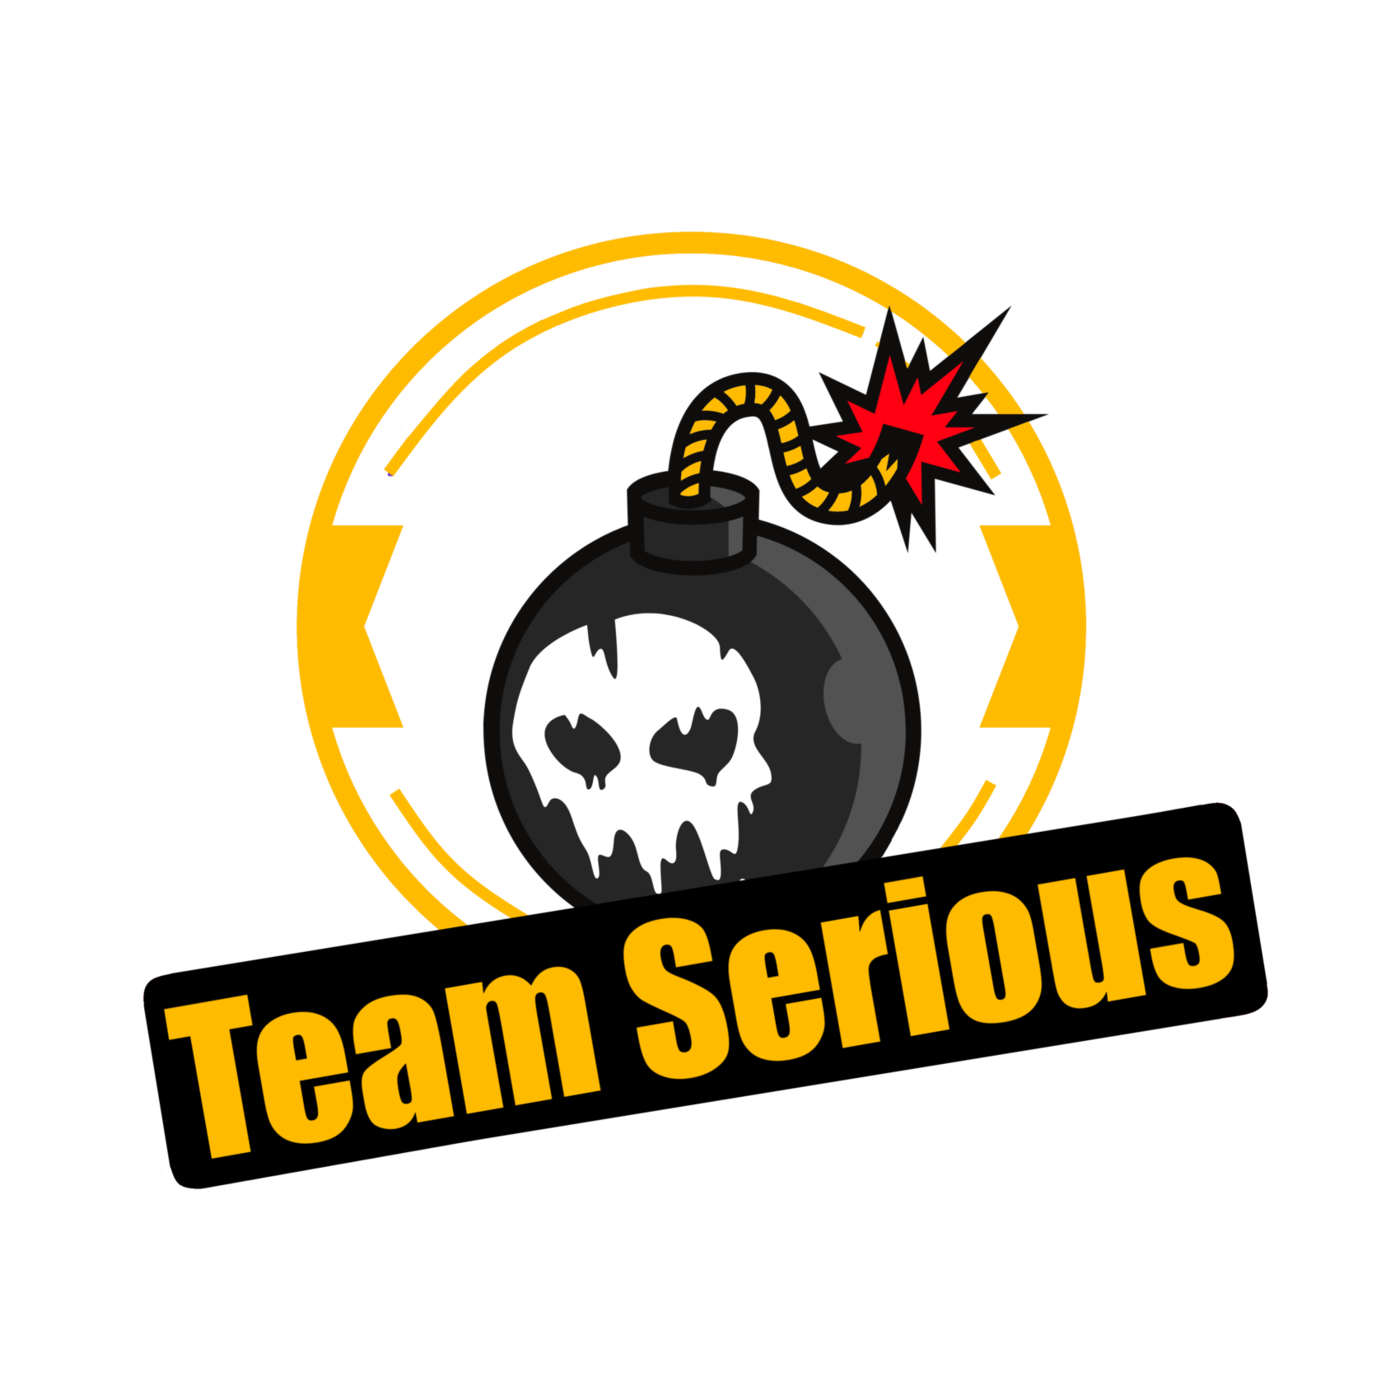 Team Serious DFW Talks - Samaze